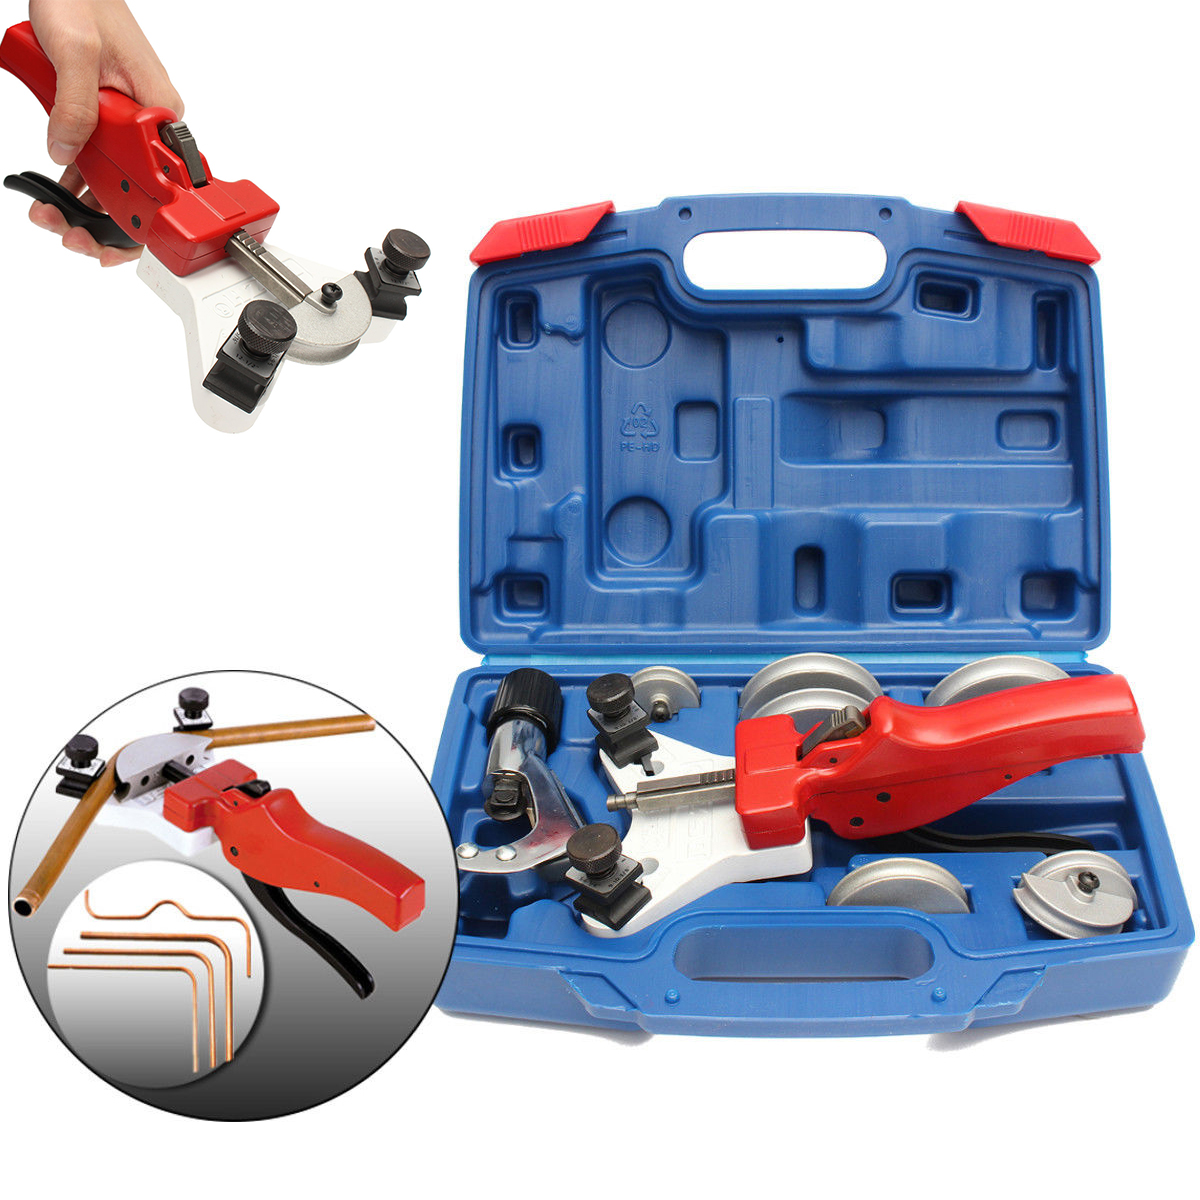 1 Set Manual Steel Pipe Tube Bender with Copper Cutter and Plastic Box For Cutting 15-22mm Tube 1 set heavy duty tube bender manual steel copper pipe bending tool with tube cutter 5 12mm mayitr